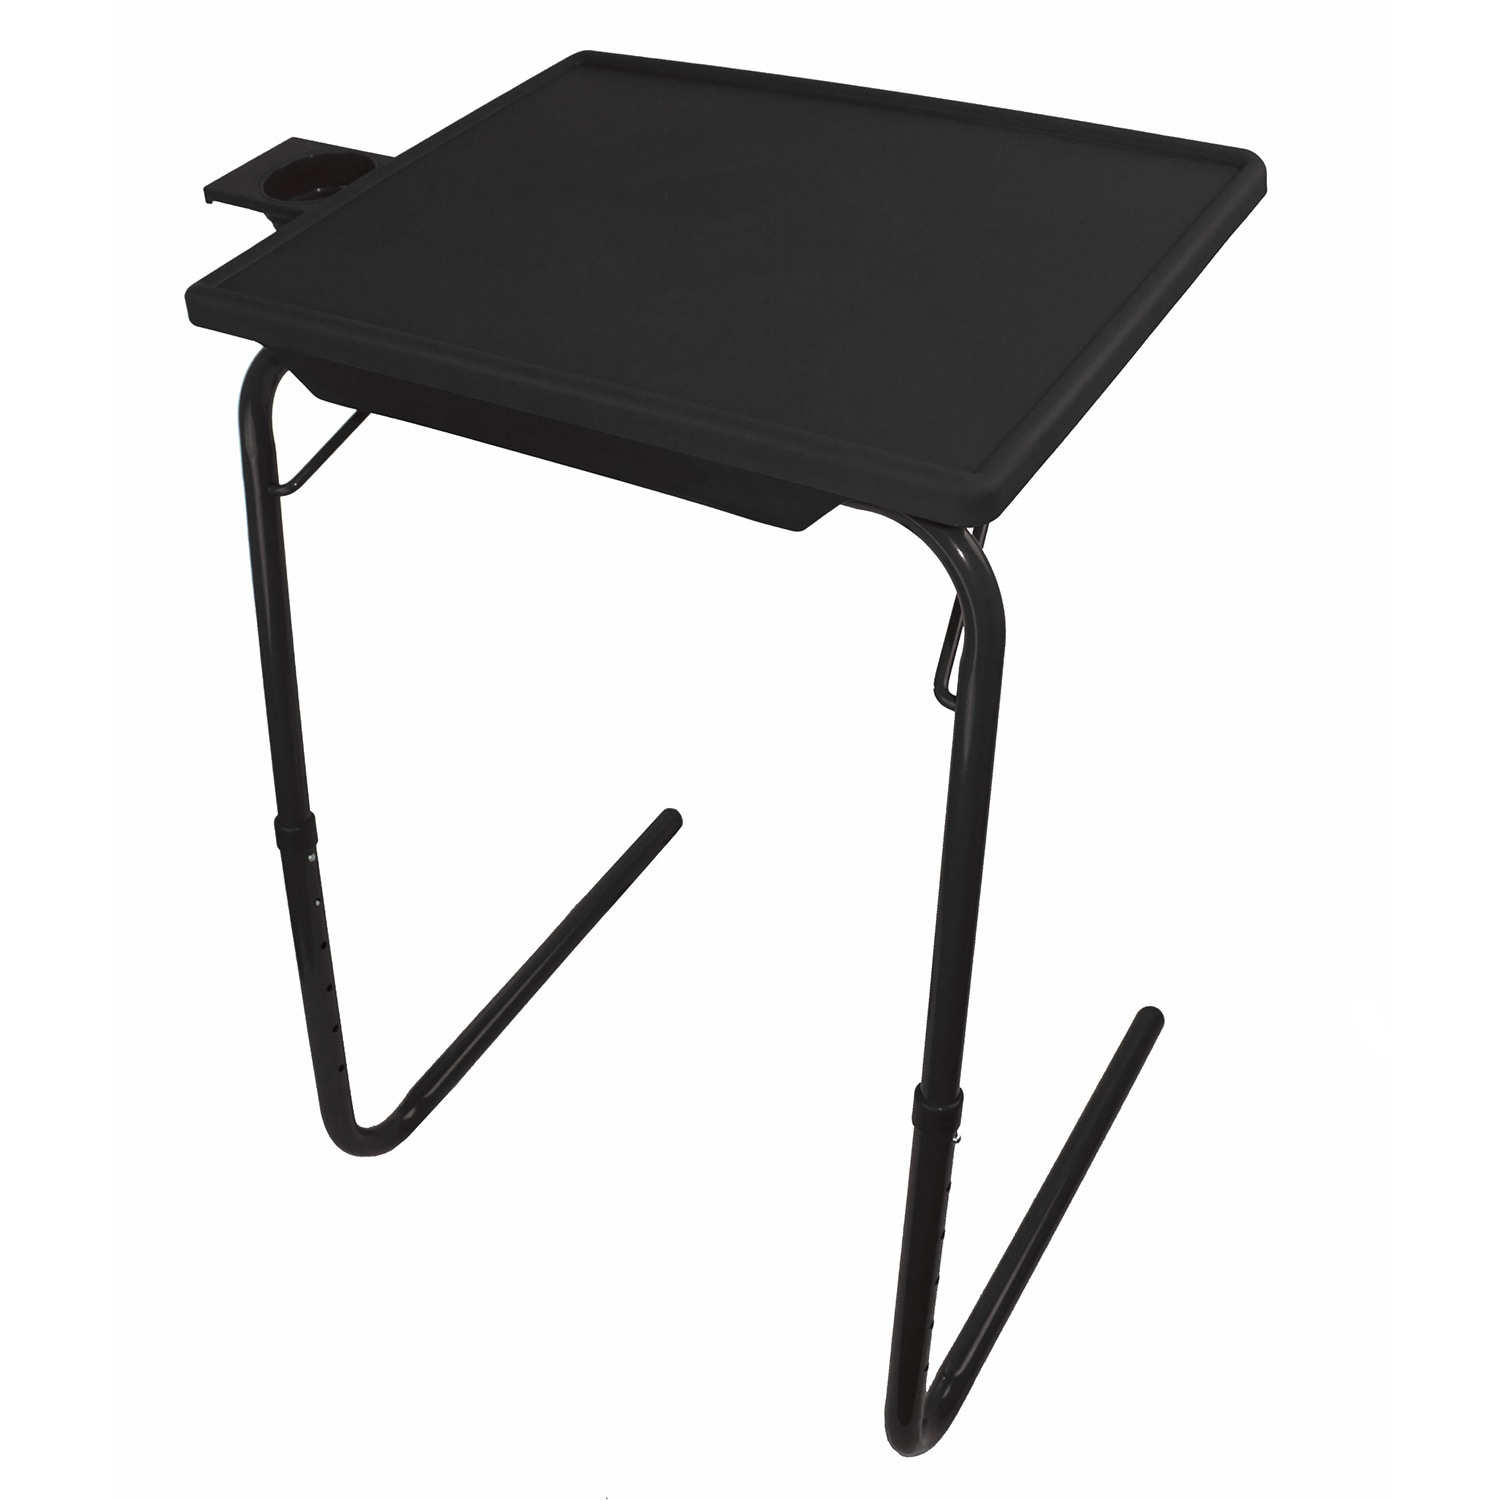 portable foldable tv tray table laptop eating stand w adjustable tray ebay. Black Bedroom Furniture Sets. Home Design Ideas